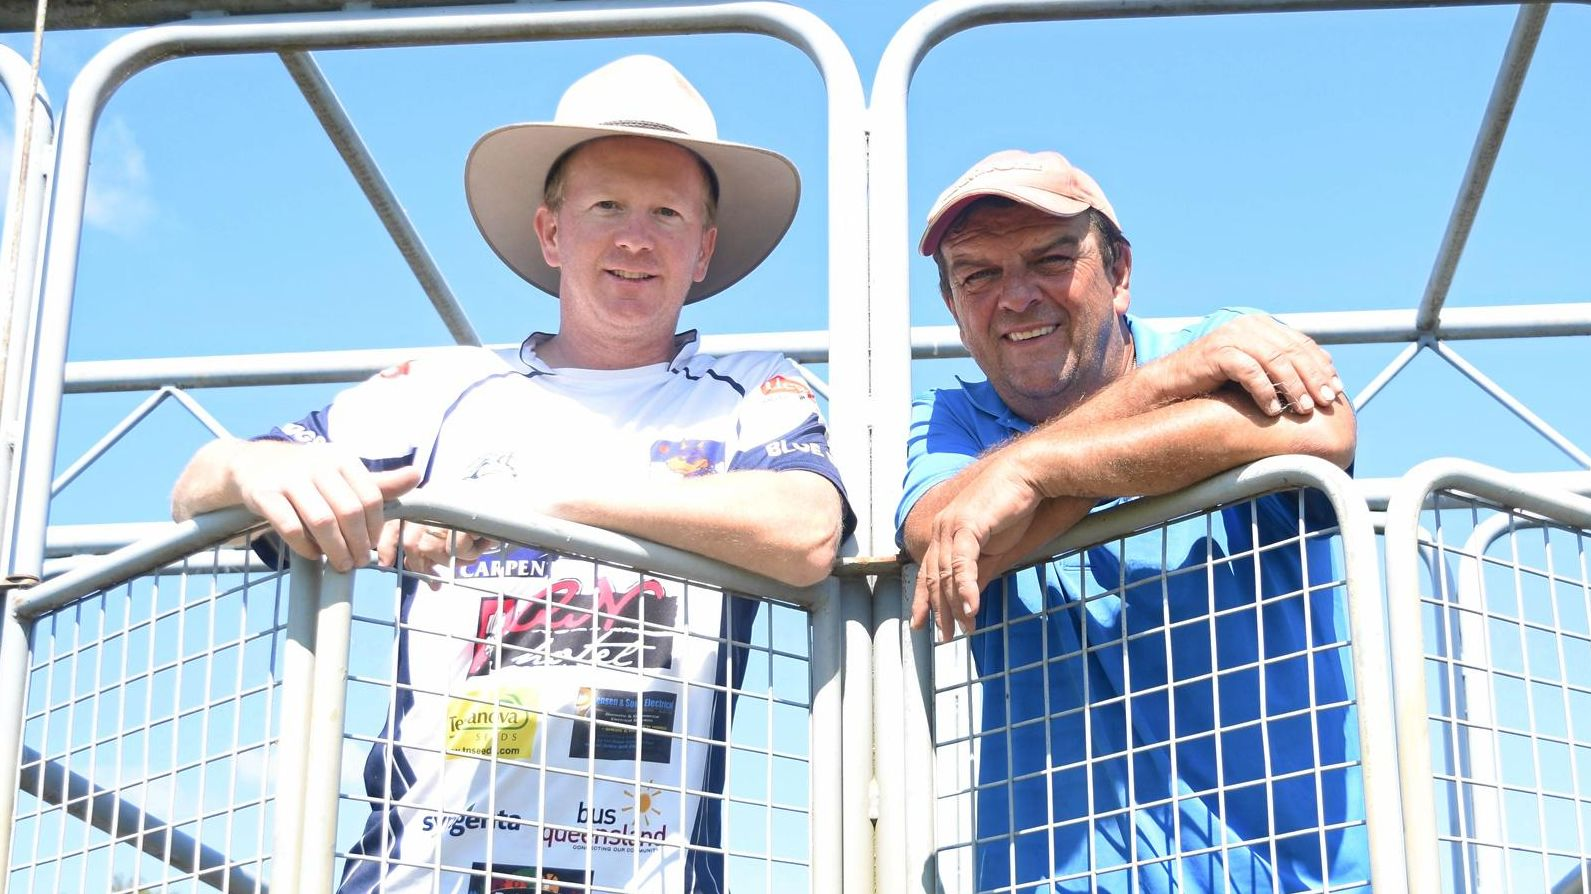 FAST LANE Lockyer Race Club organisers Steve Brennan (left) and Terry Kirkwood put in many hours behind the scenes for the club.